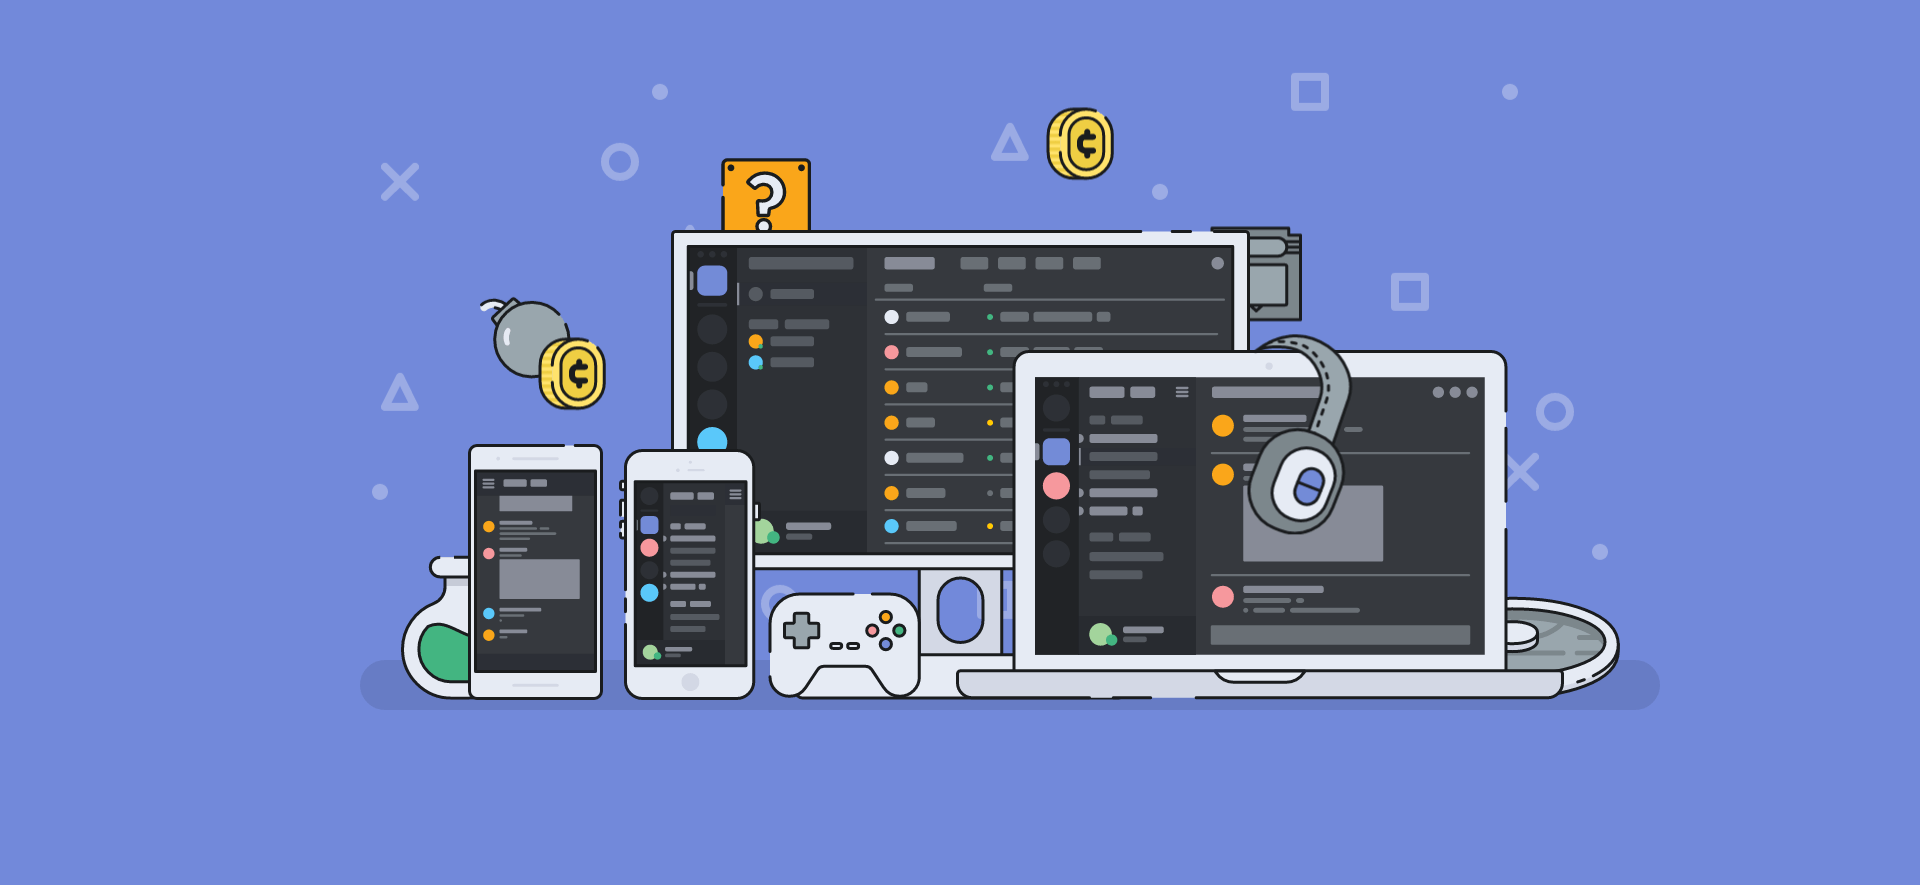 discord crypto chat